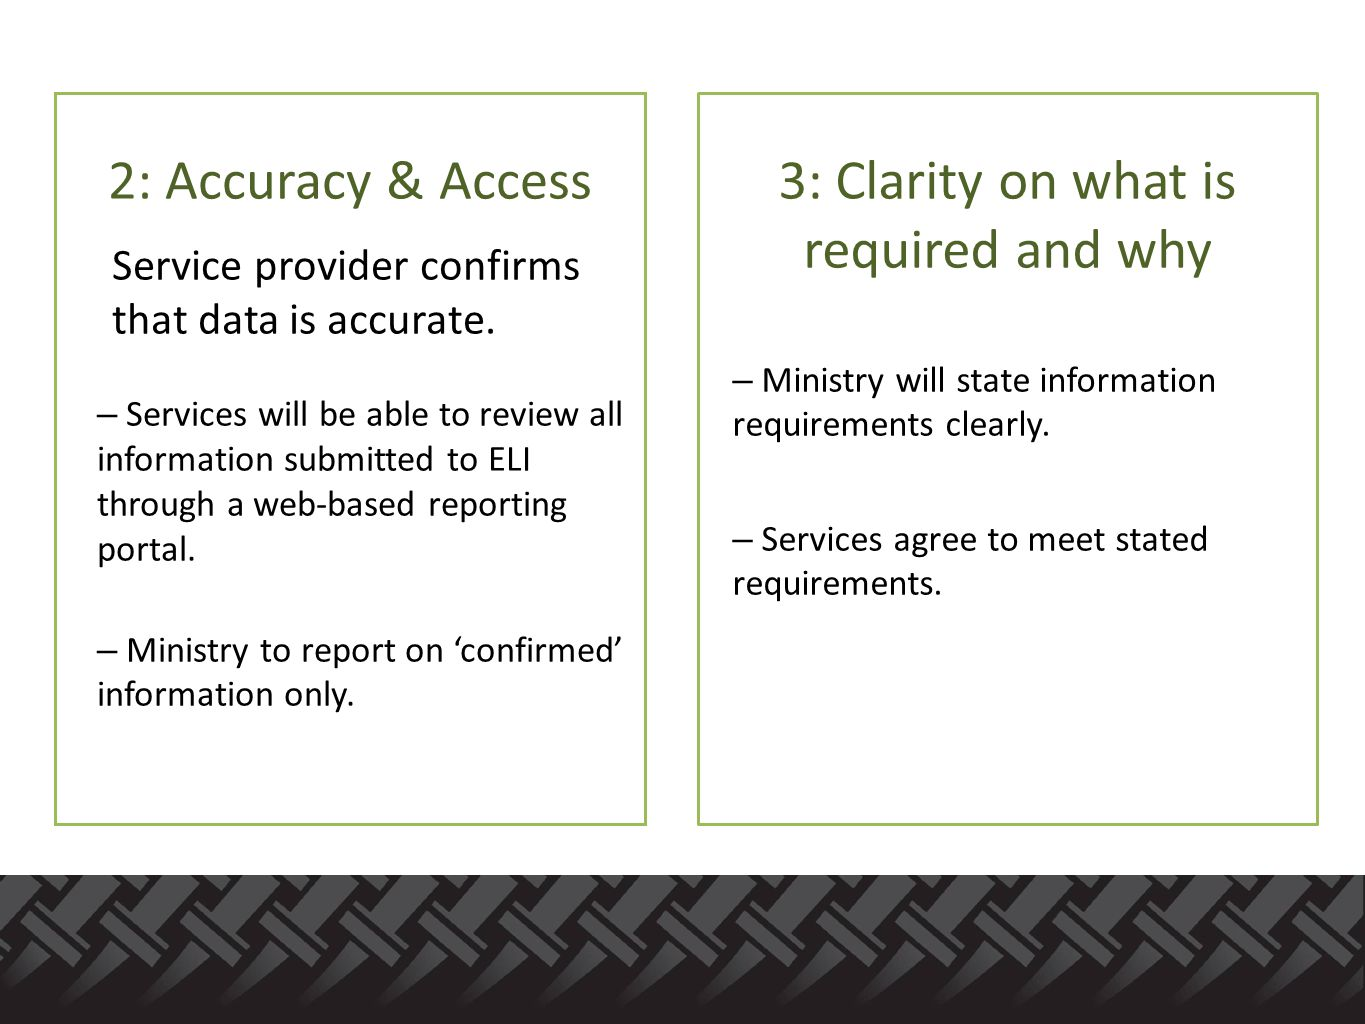 2: Accuracy & Access Service provider confirms that data is accurate.